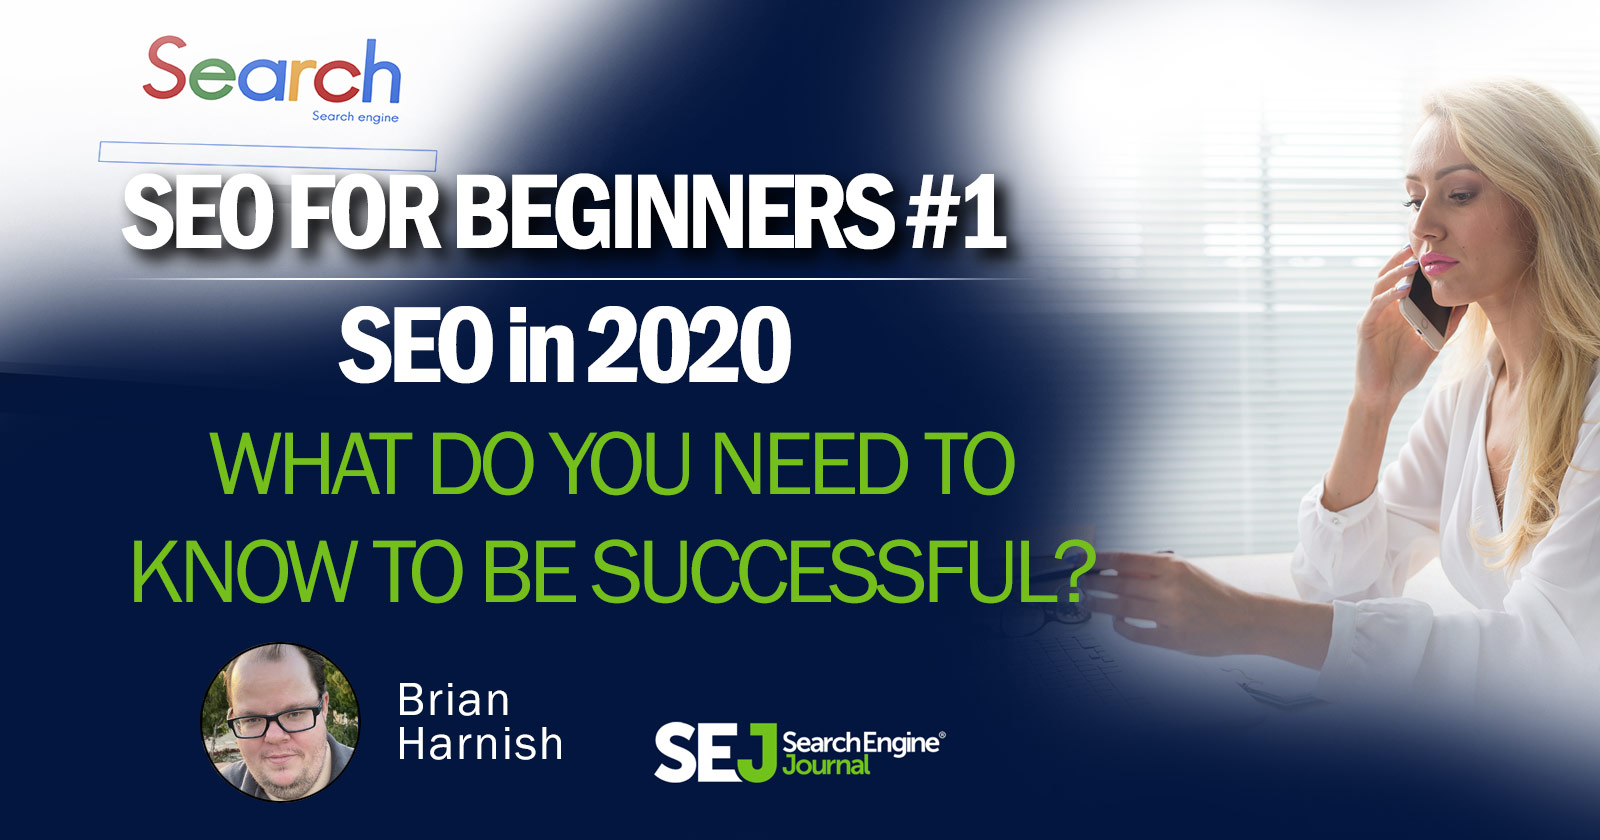 <b>SEO</b> in 2020: What Basics You Need to Know to Be Successful